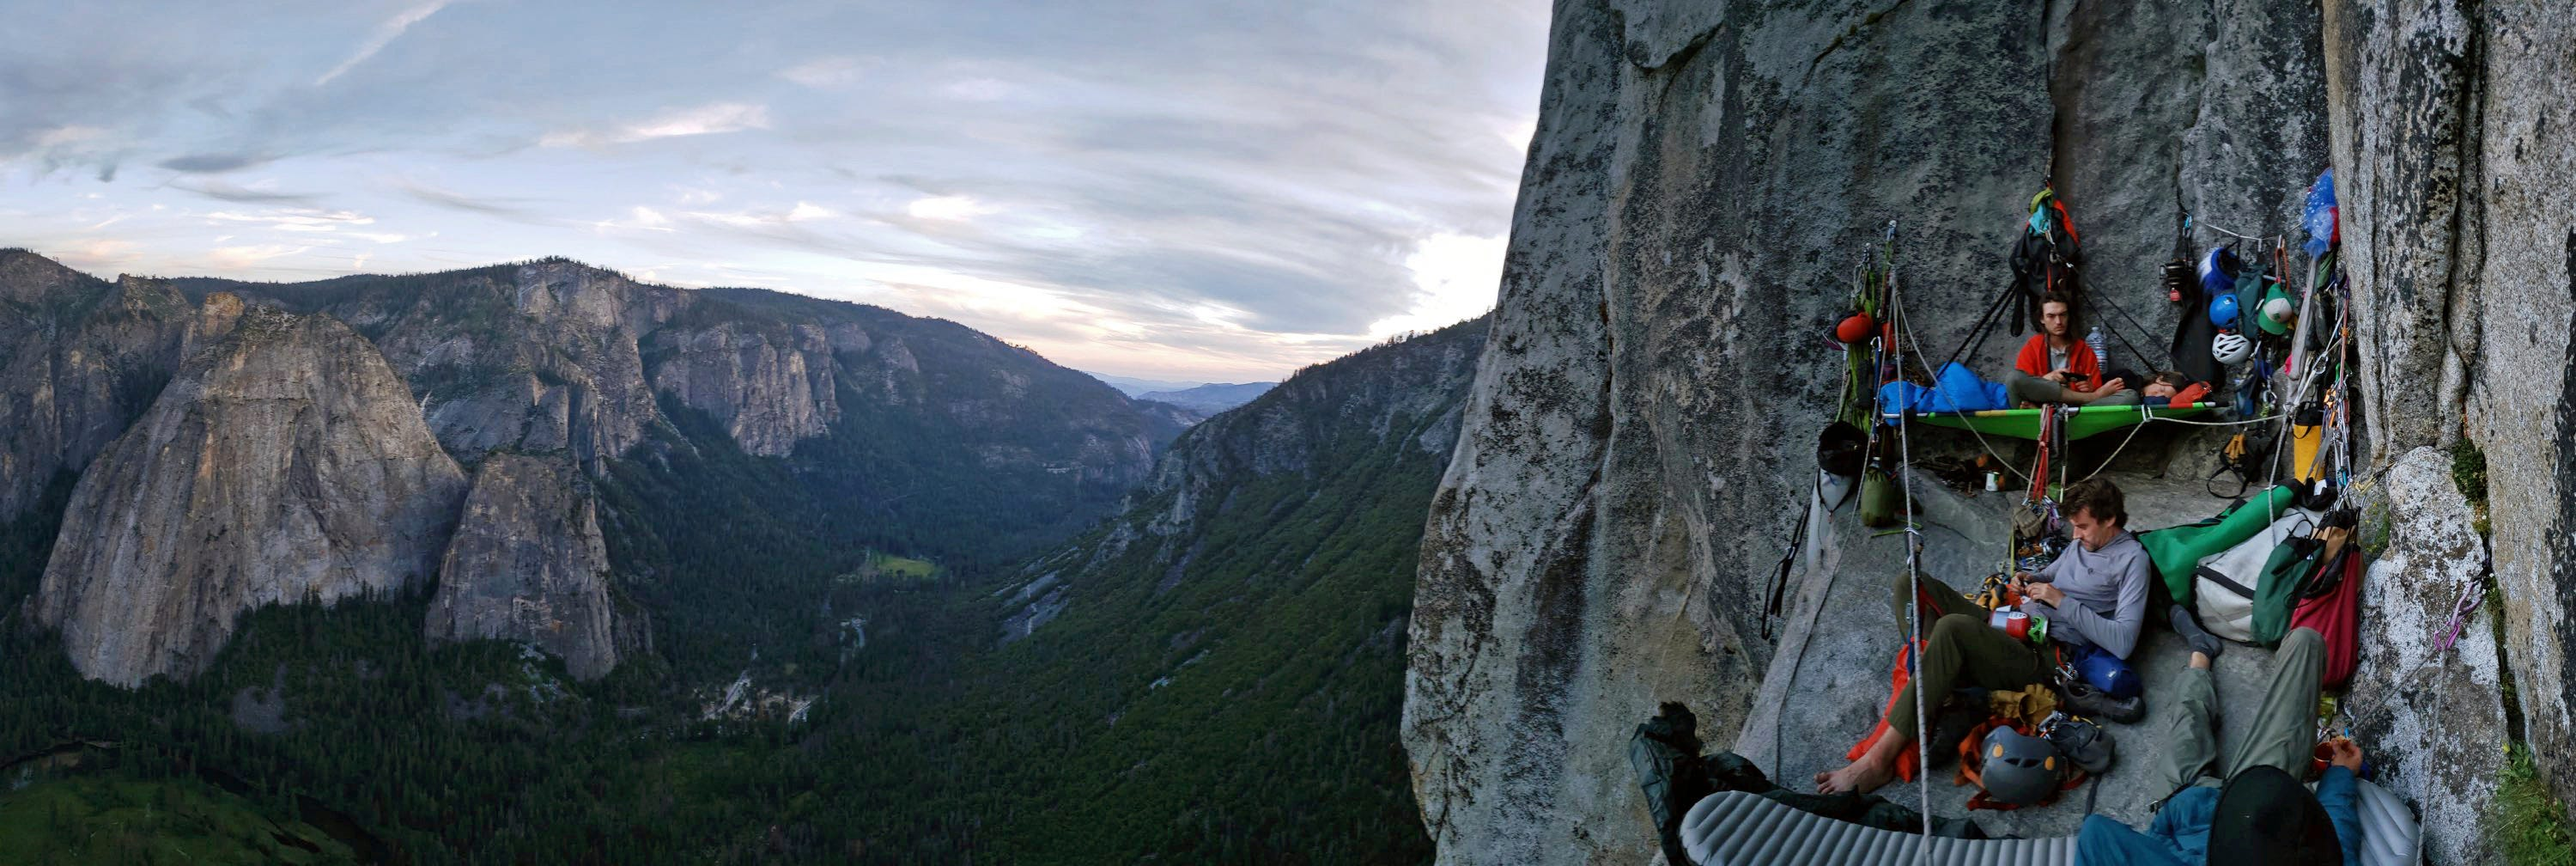 Yosemite climbers face new obstacle: overnight permits 1